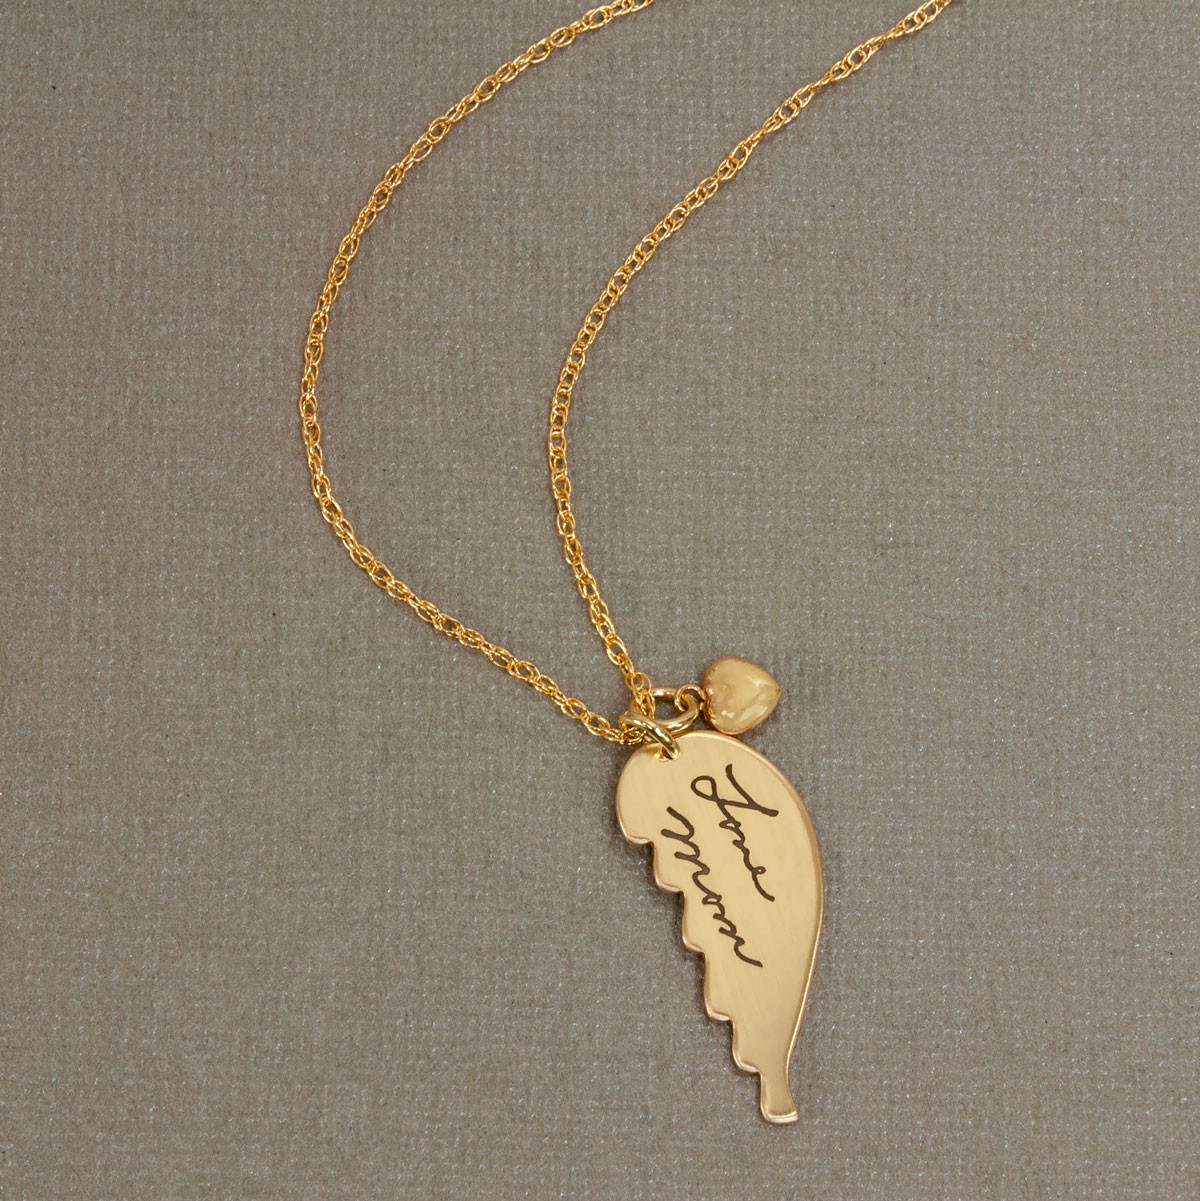 gold angel wing with handwriting, shown from the top